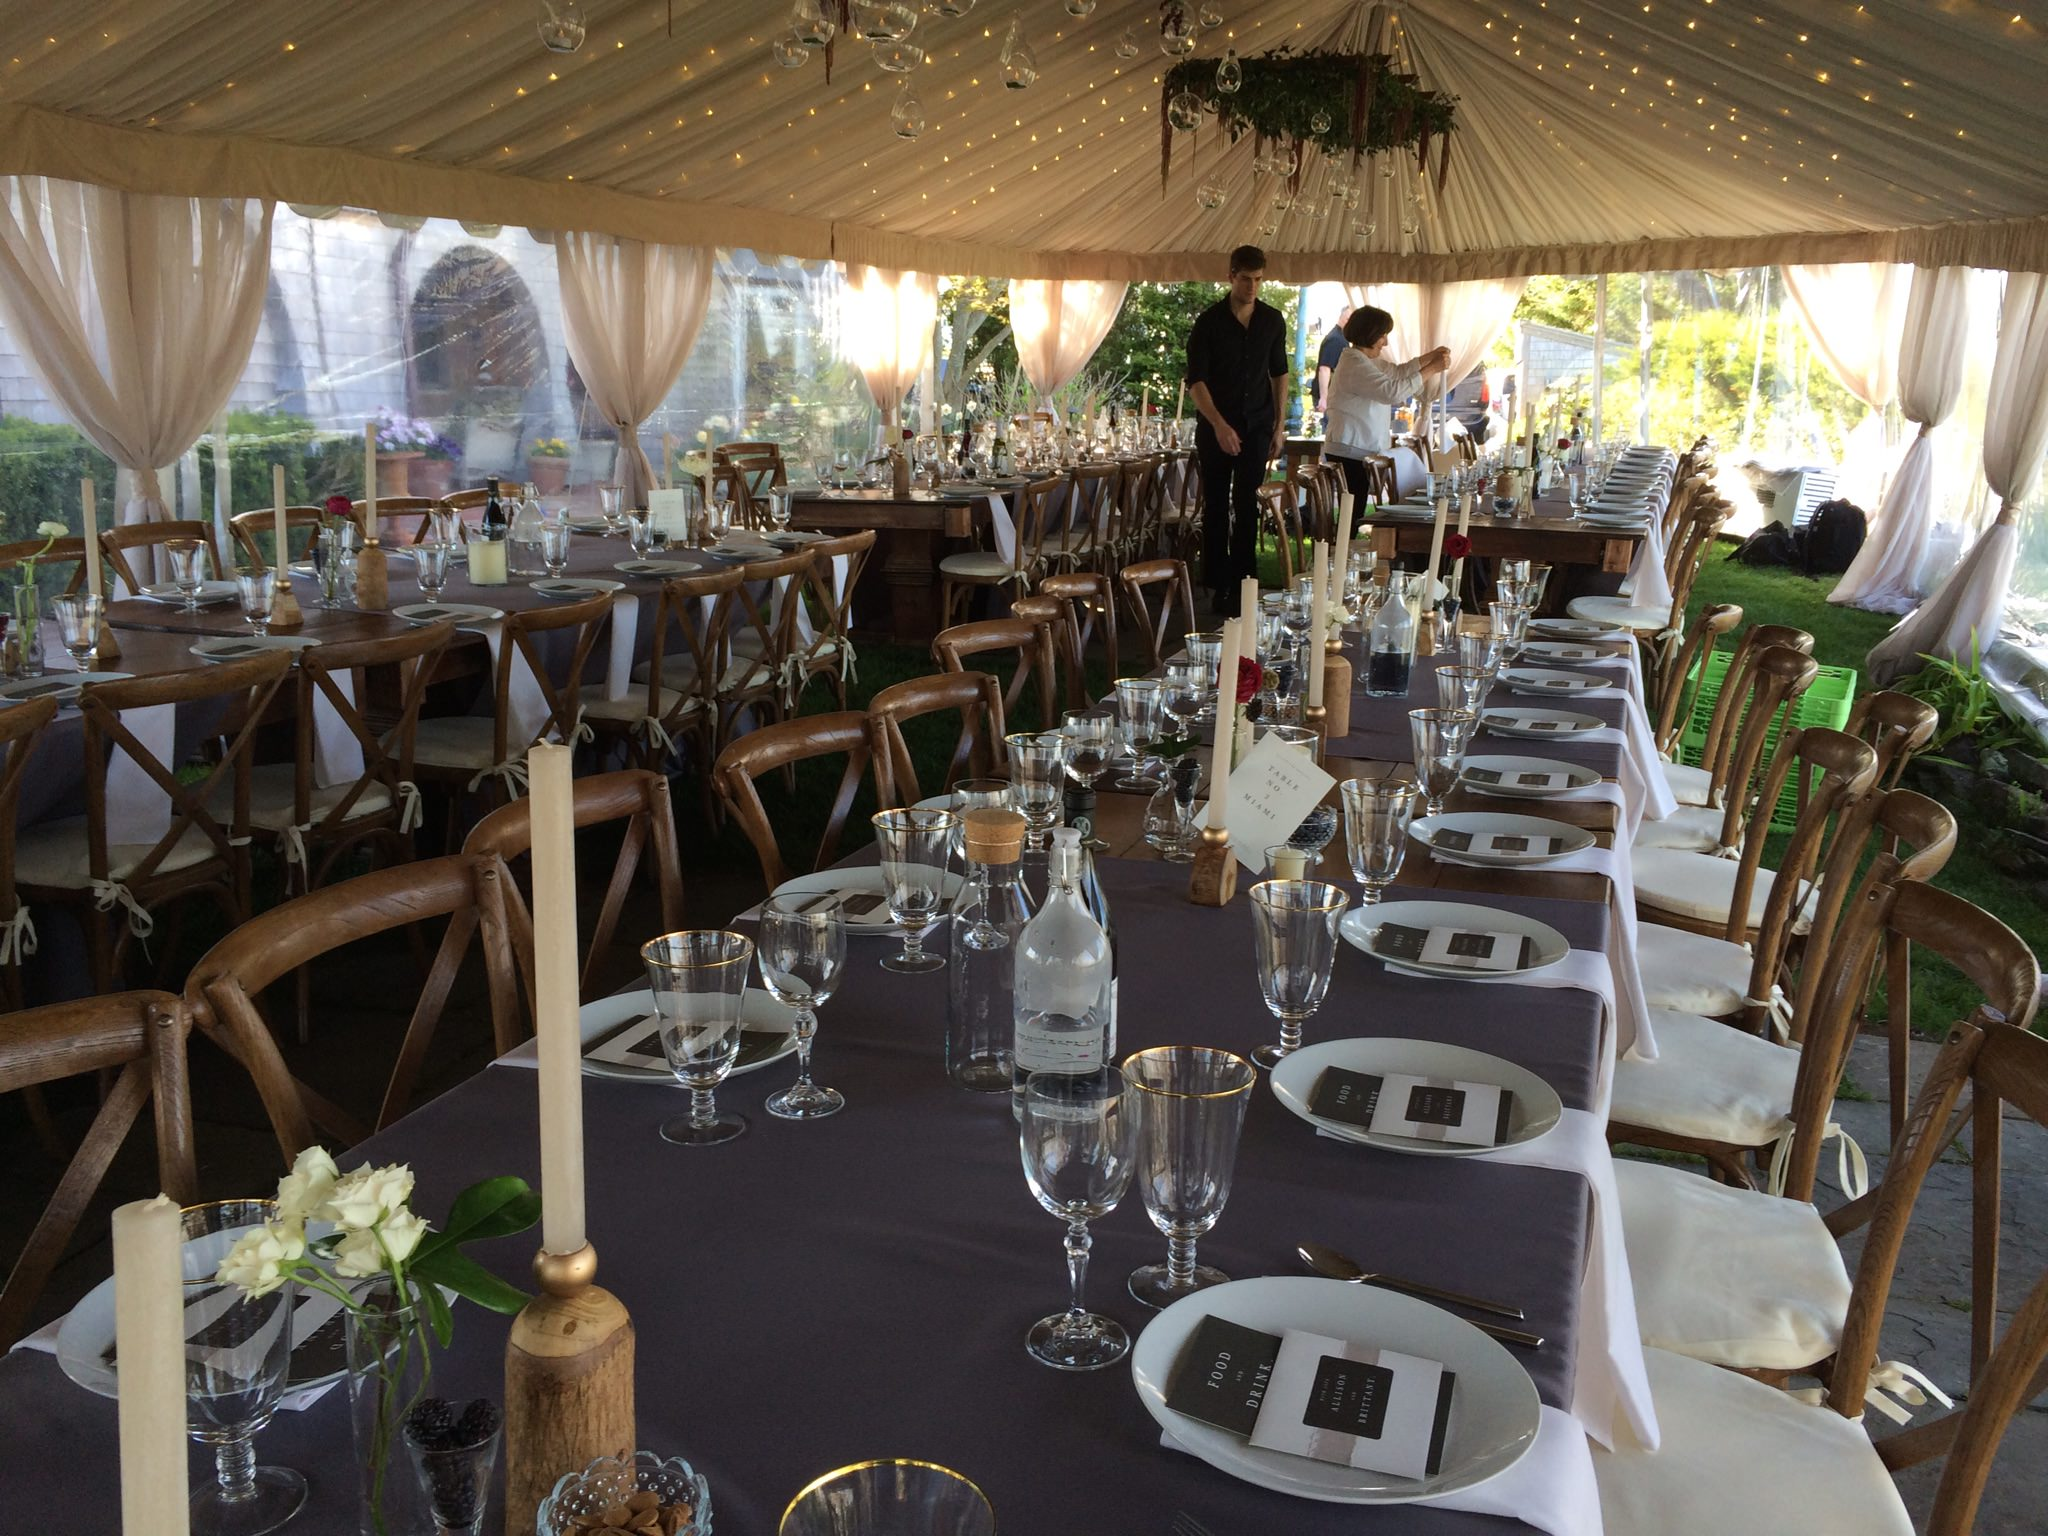 Cater tent pic